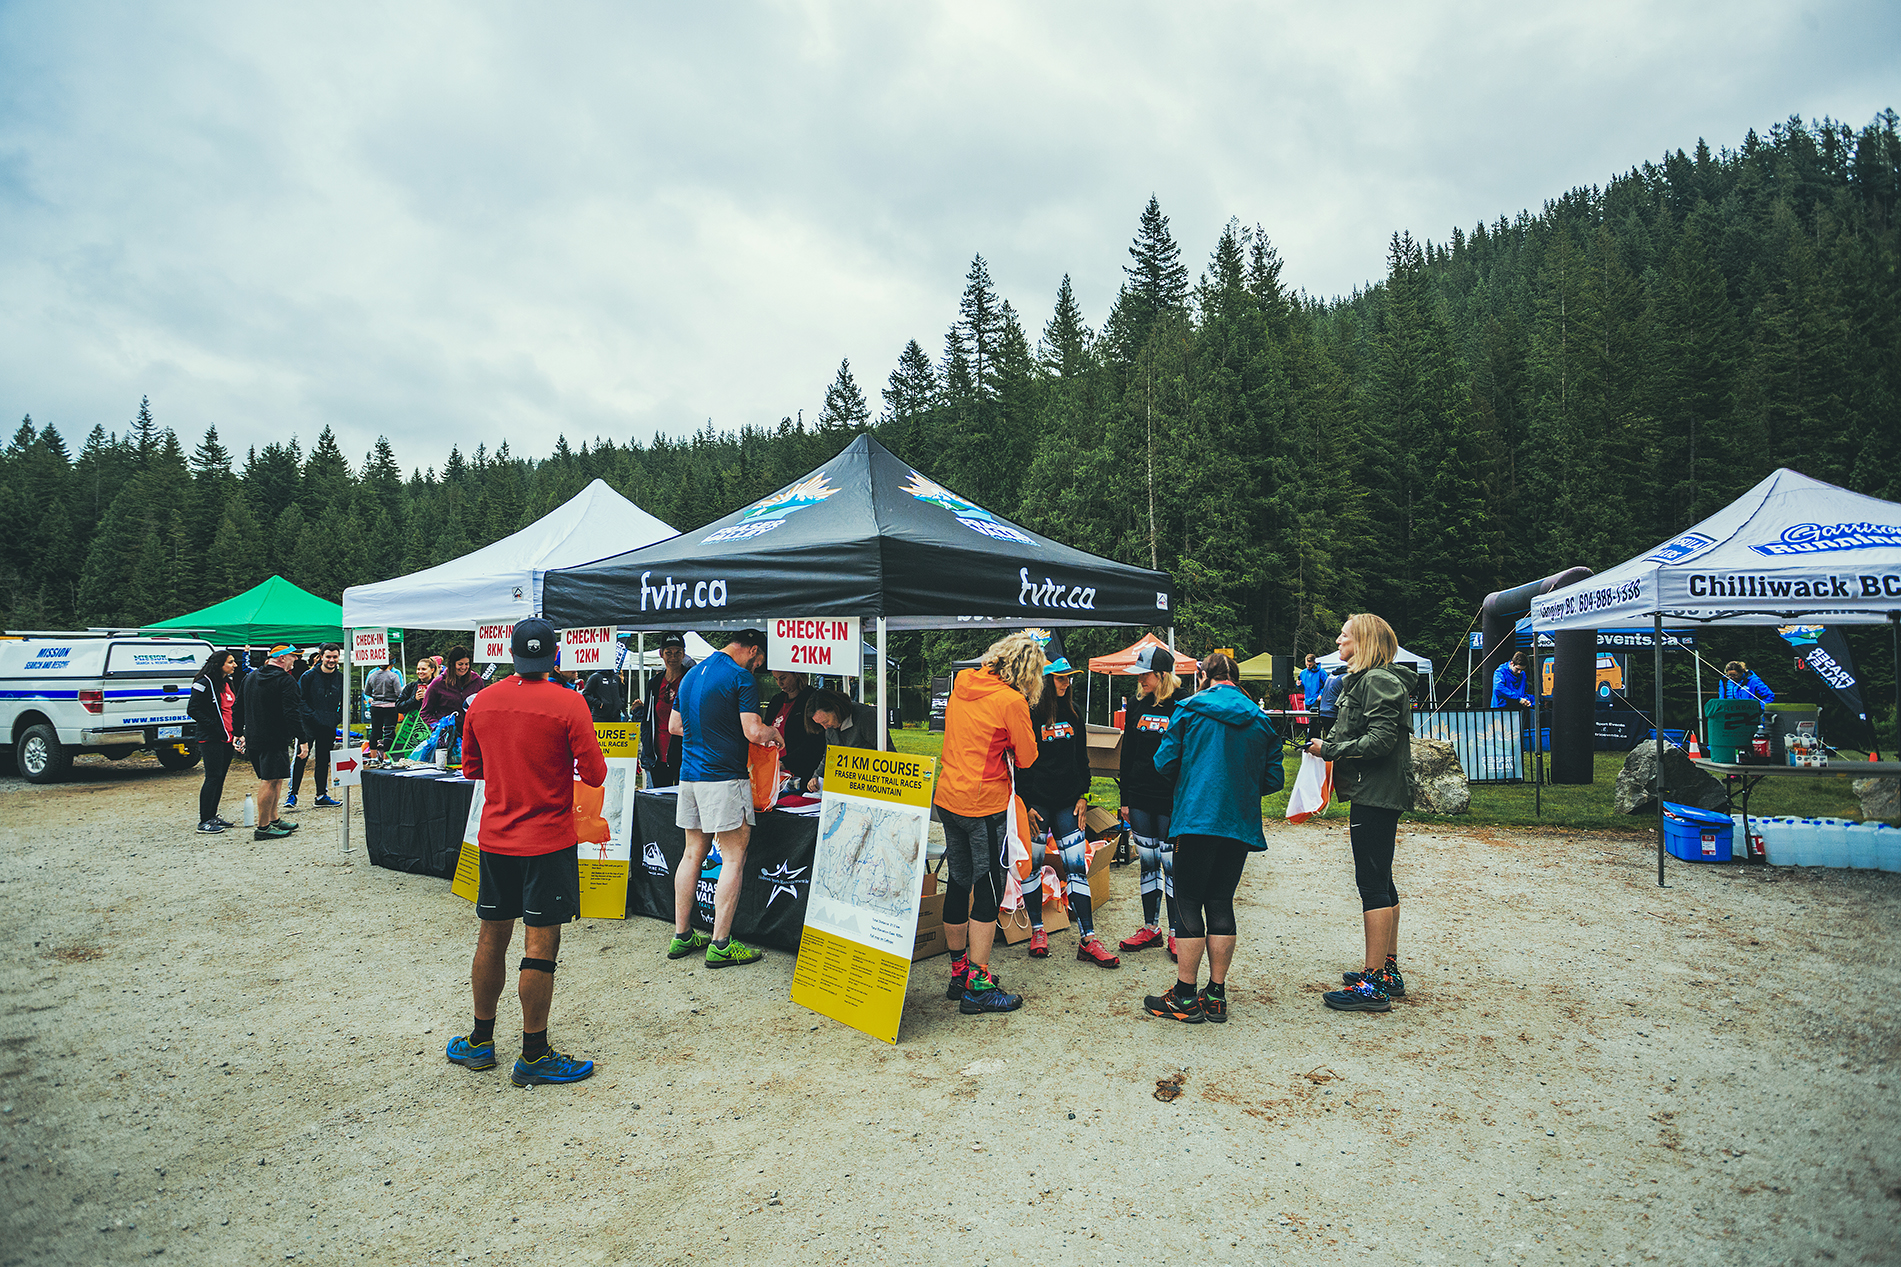 Fraser Valley Trail Races - Bear Mountain - IMG_2313 by Brice Ferre Studio - Vancouver Portrait Adventure and Athlete Photographer.jpg